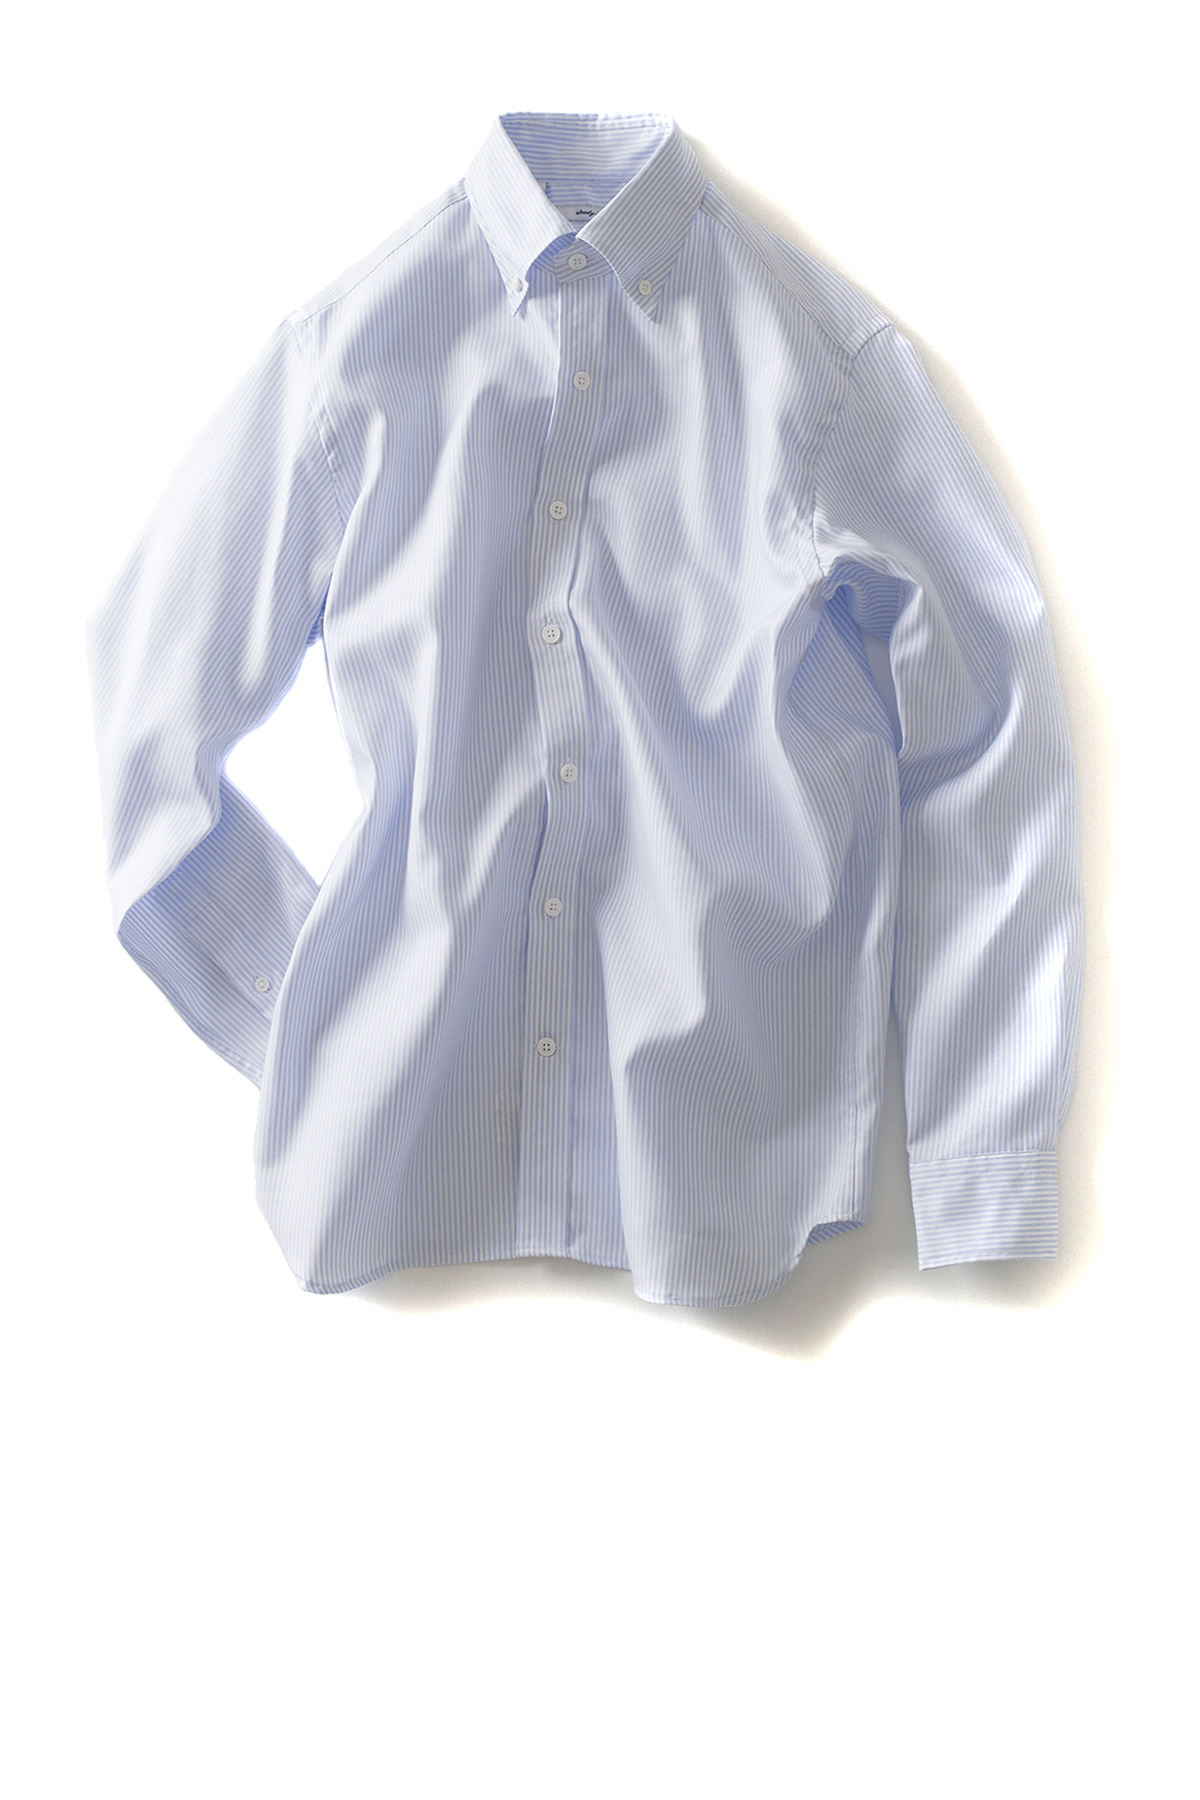 steady state : Casual Shirt (Blue Stipe)